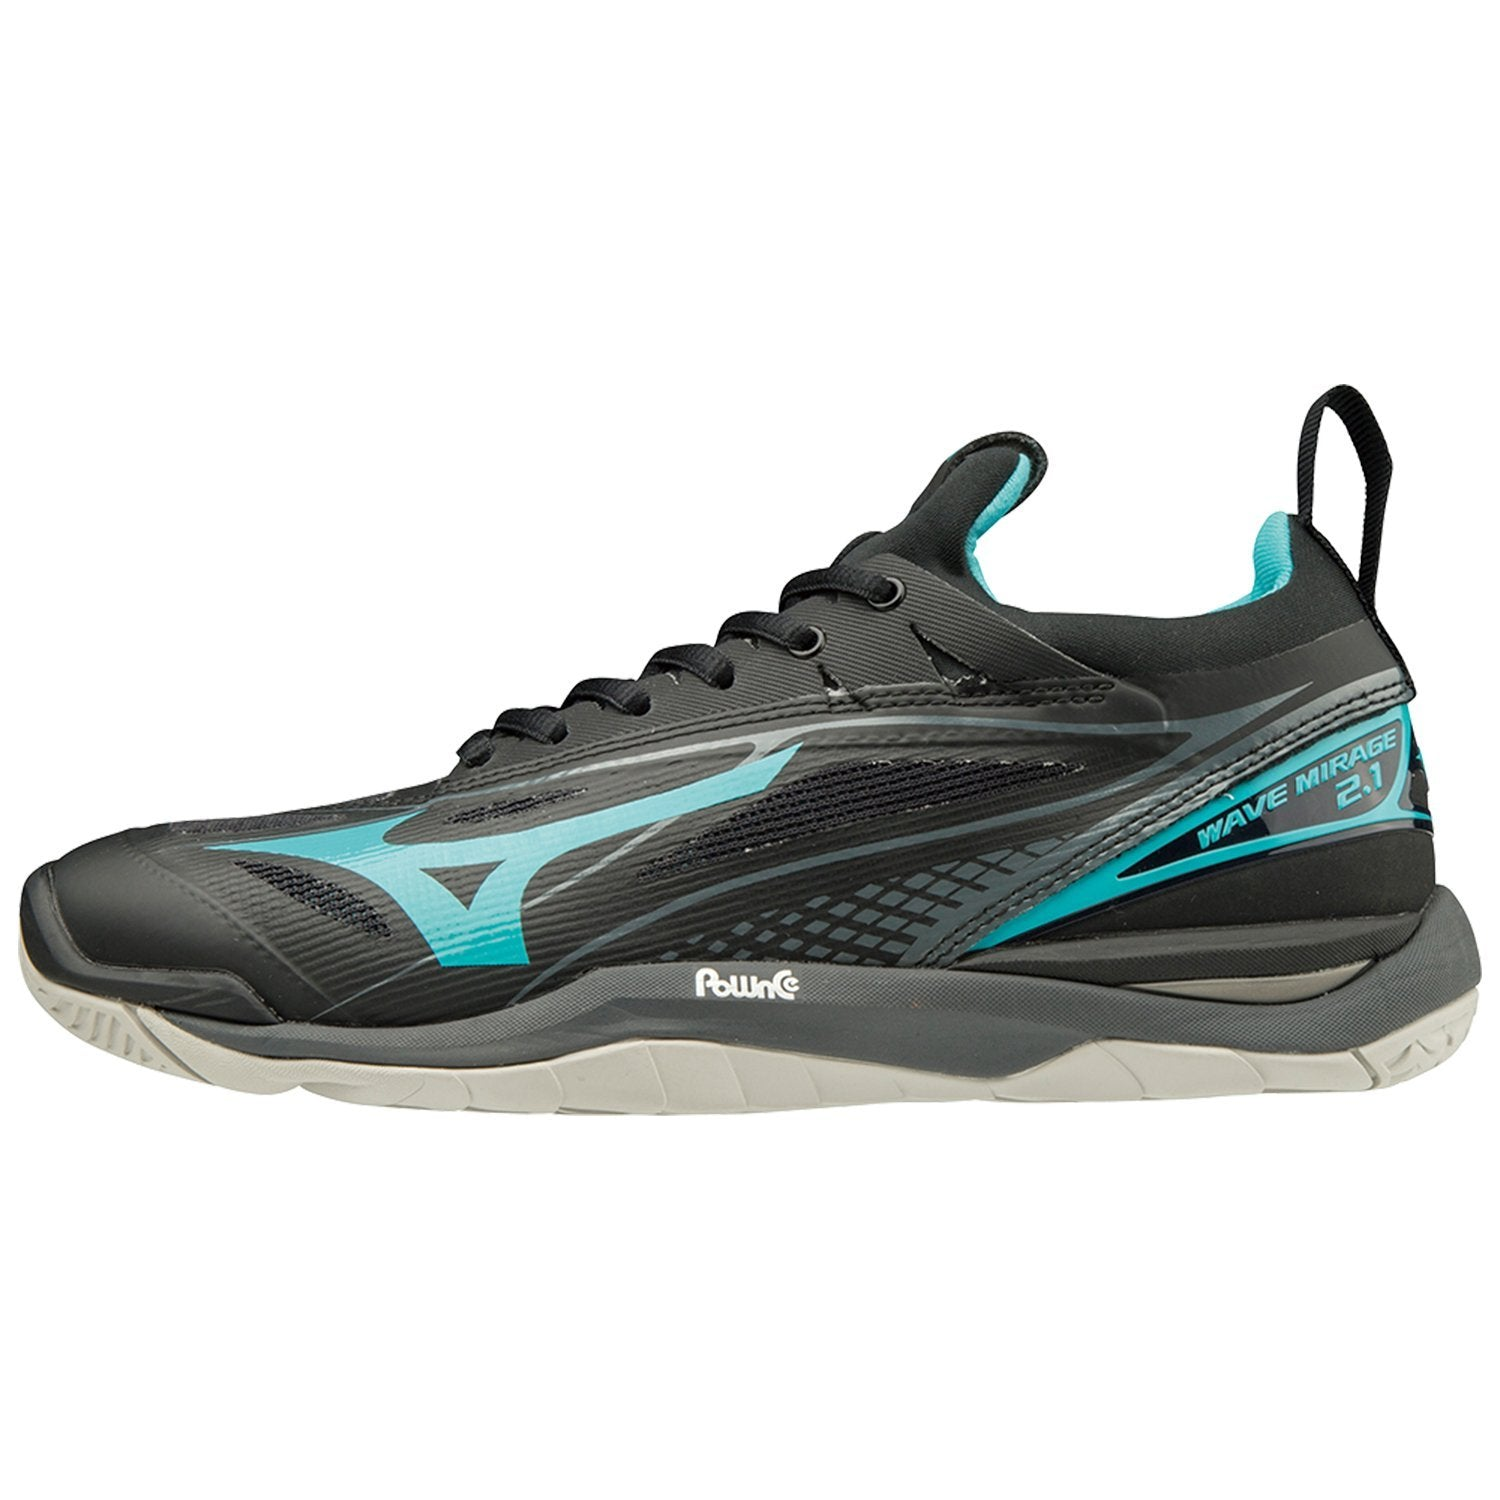 Mizuno Wave Mireage 2.1 Netball Shoe - left side